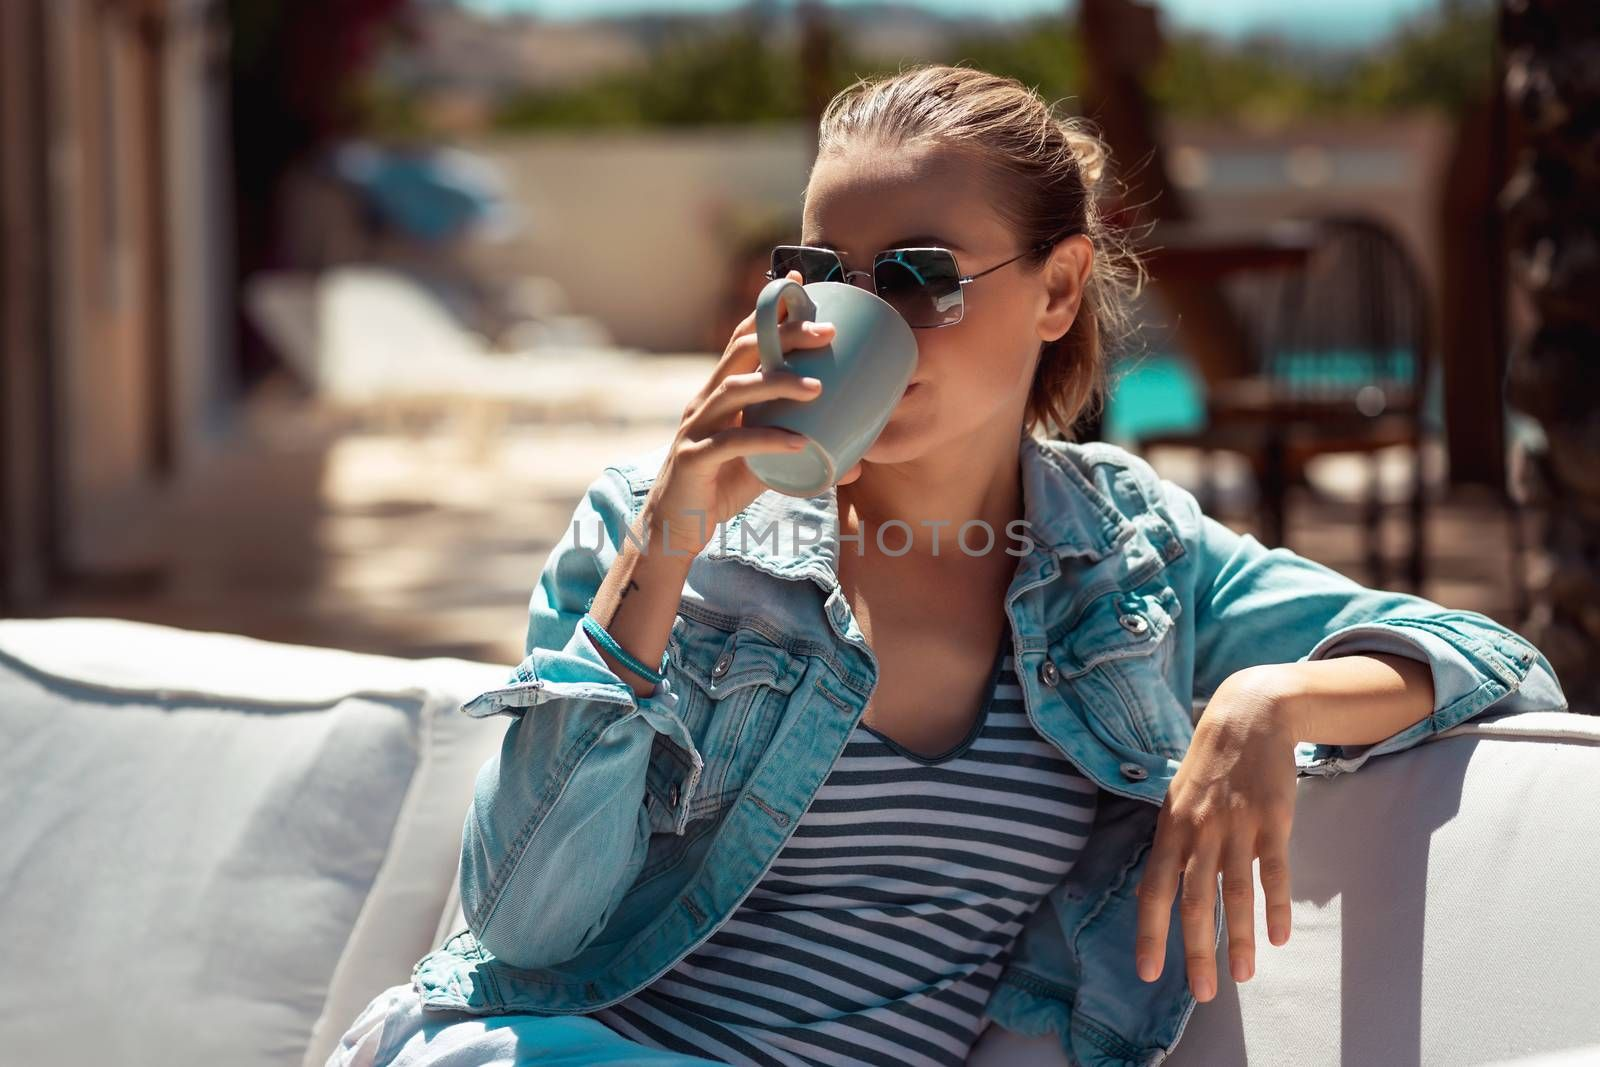 Portrait Of a Pretty Woman Sitting with Cup of Coffee in Outdoors Cafe. Enjoying Tasty Beverage. Spending Summer Weekend Spending Summer Weekend in the City. Coffee Break